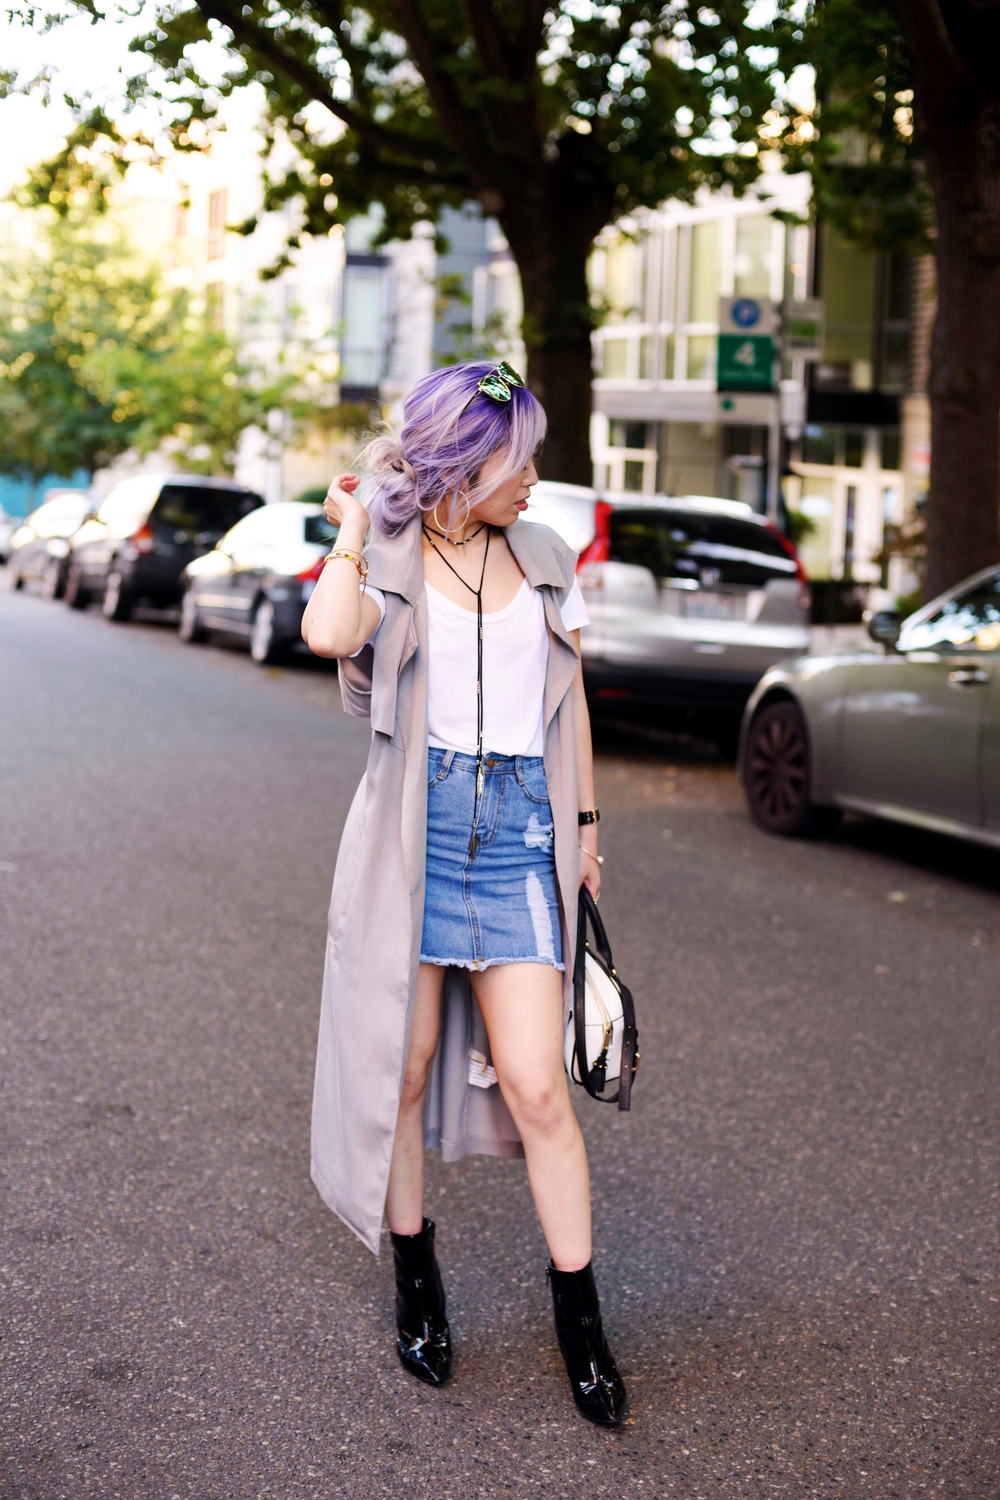 Dezzal Grey Trench Coat_TOPSHOP White T-shirt_She Inside Highwaisted Denim Mini Skit_ALDO Patent Boots_ZARA Mini Bag_Suede Choker_Daniel Wellington Watch_Aikas Love Cloeset_Seattle Fashion Blogger from Japan_Lavender Hair_Messy low bun Hair 16